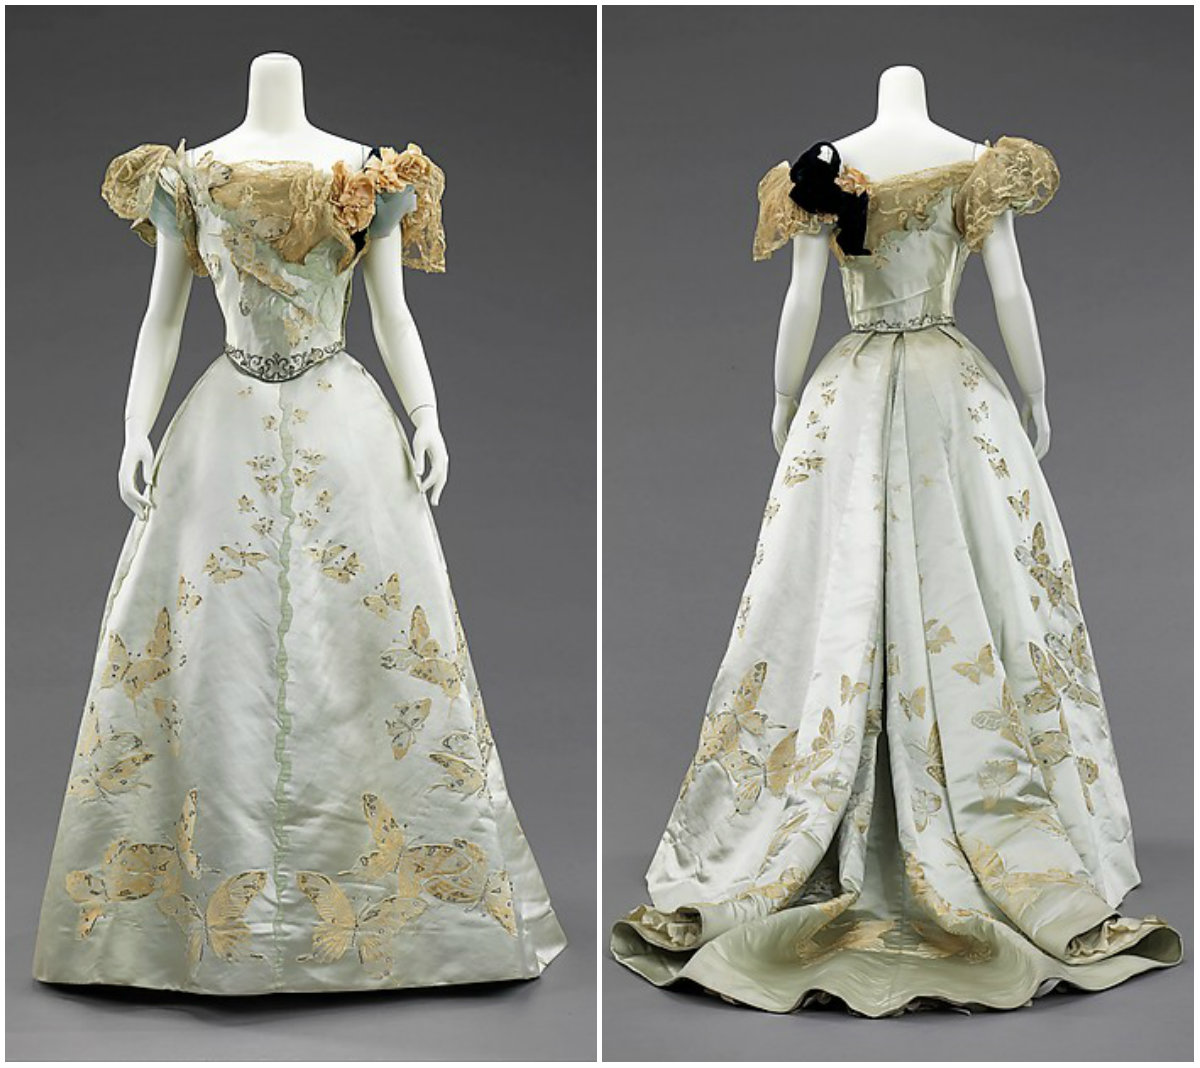 1898. Ball Gown. Silk, rhinestones, metal. metmuseum